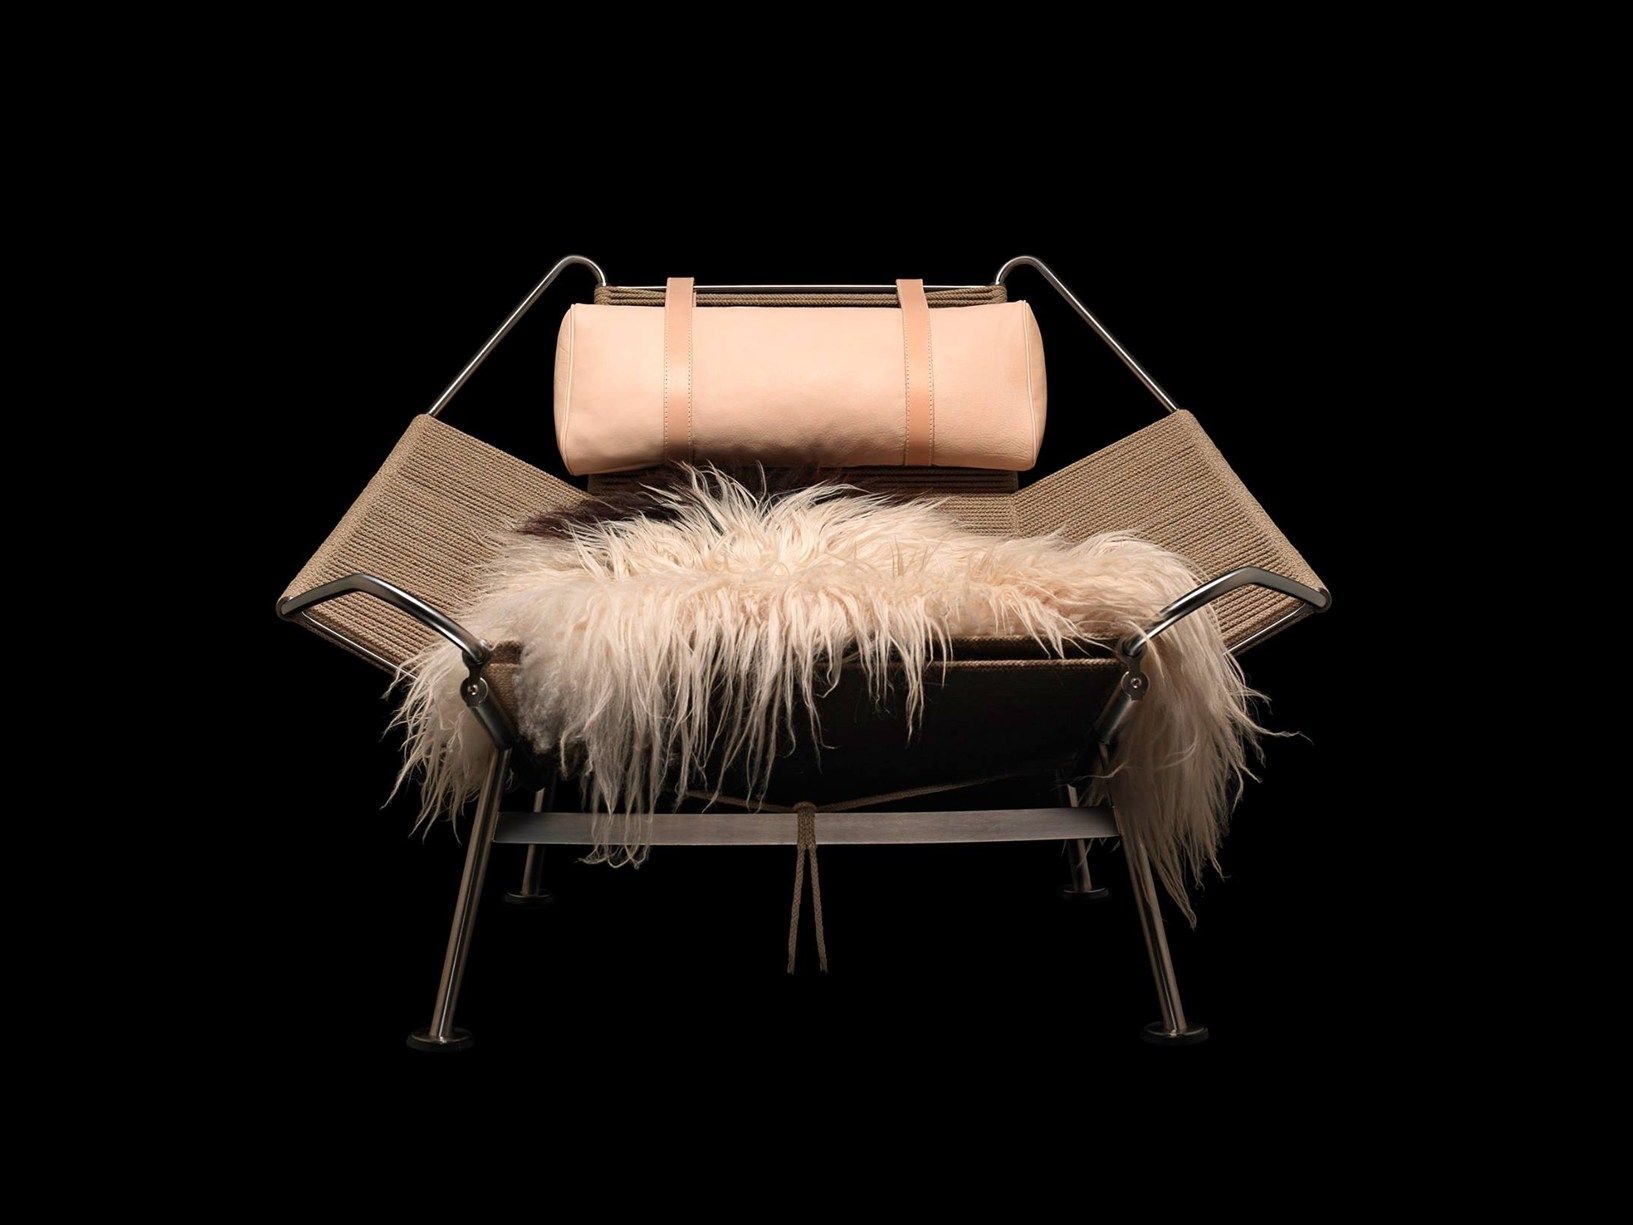 Trailblazing and futuristic the timeless lounge chair by Hans J